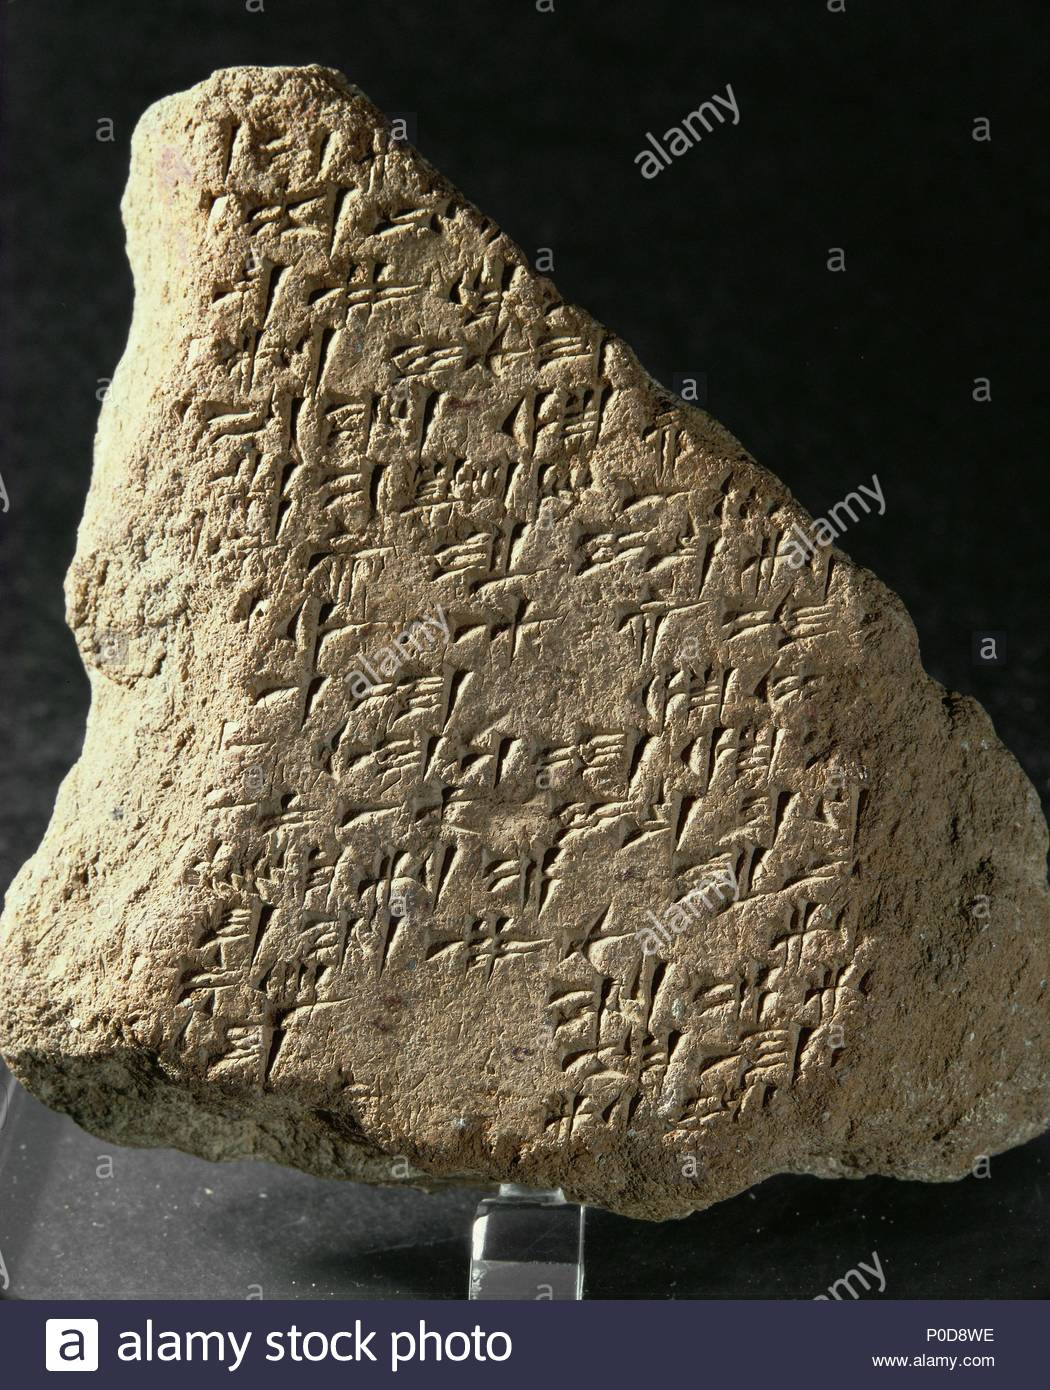 epic of gilgamesh and eternal life Epic of gilgamesh and eternal life disclaimer: this essay has been submitted  by a student this is not an example of the work written by our professional essay .